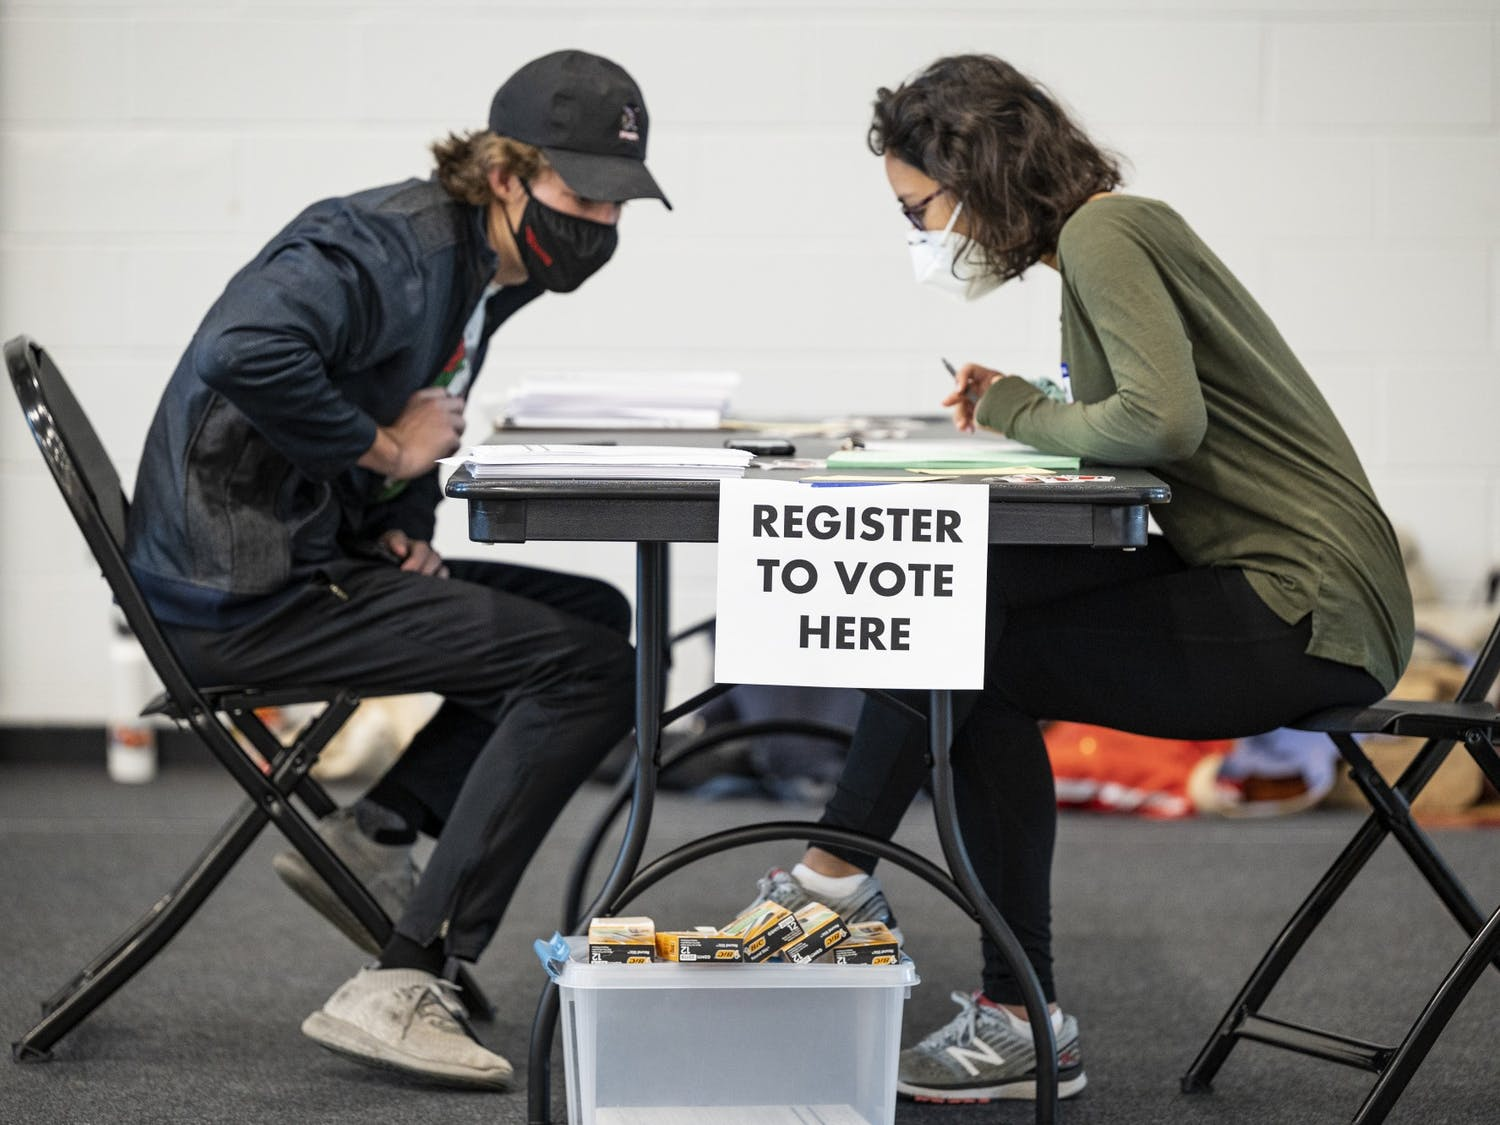 A UW student registers to vote before casting their ballot at the Nicholas Recreation Center polling station.